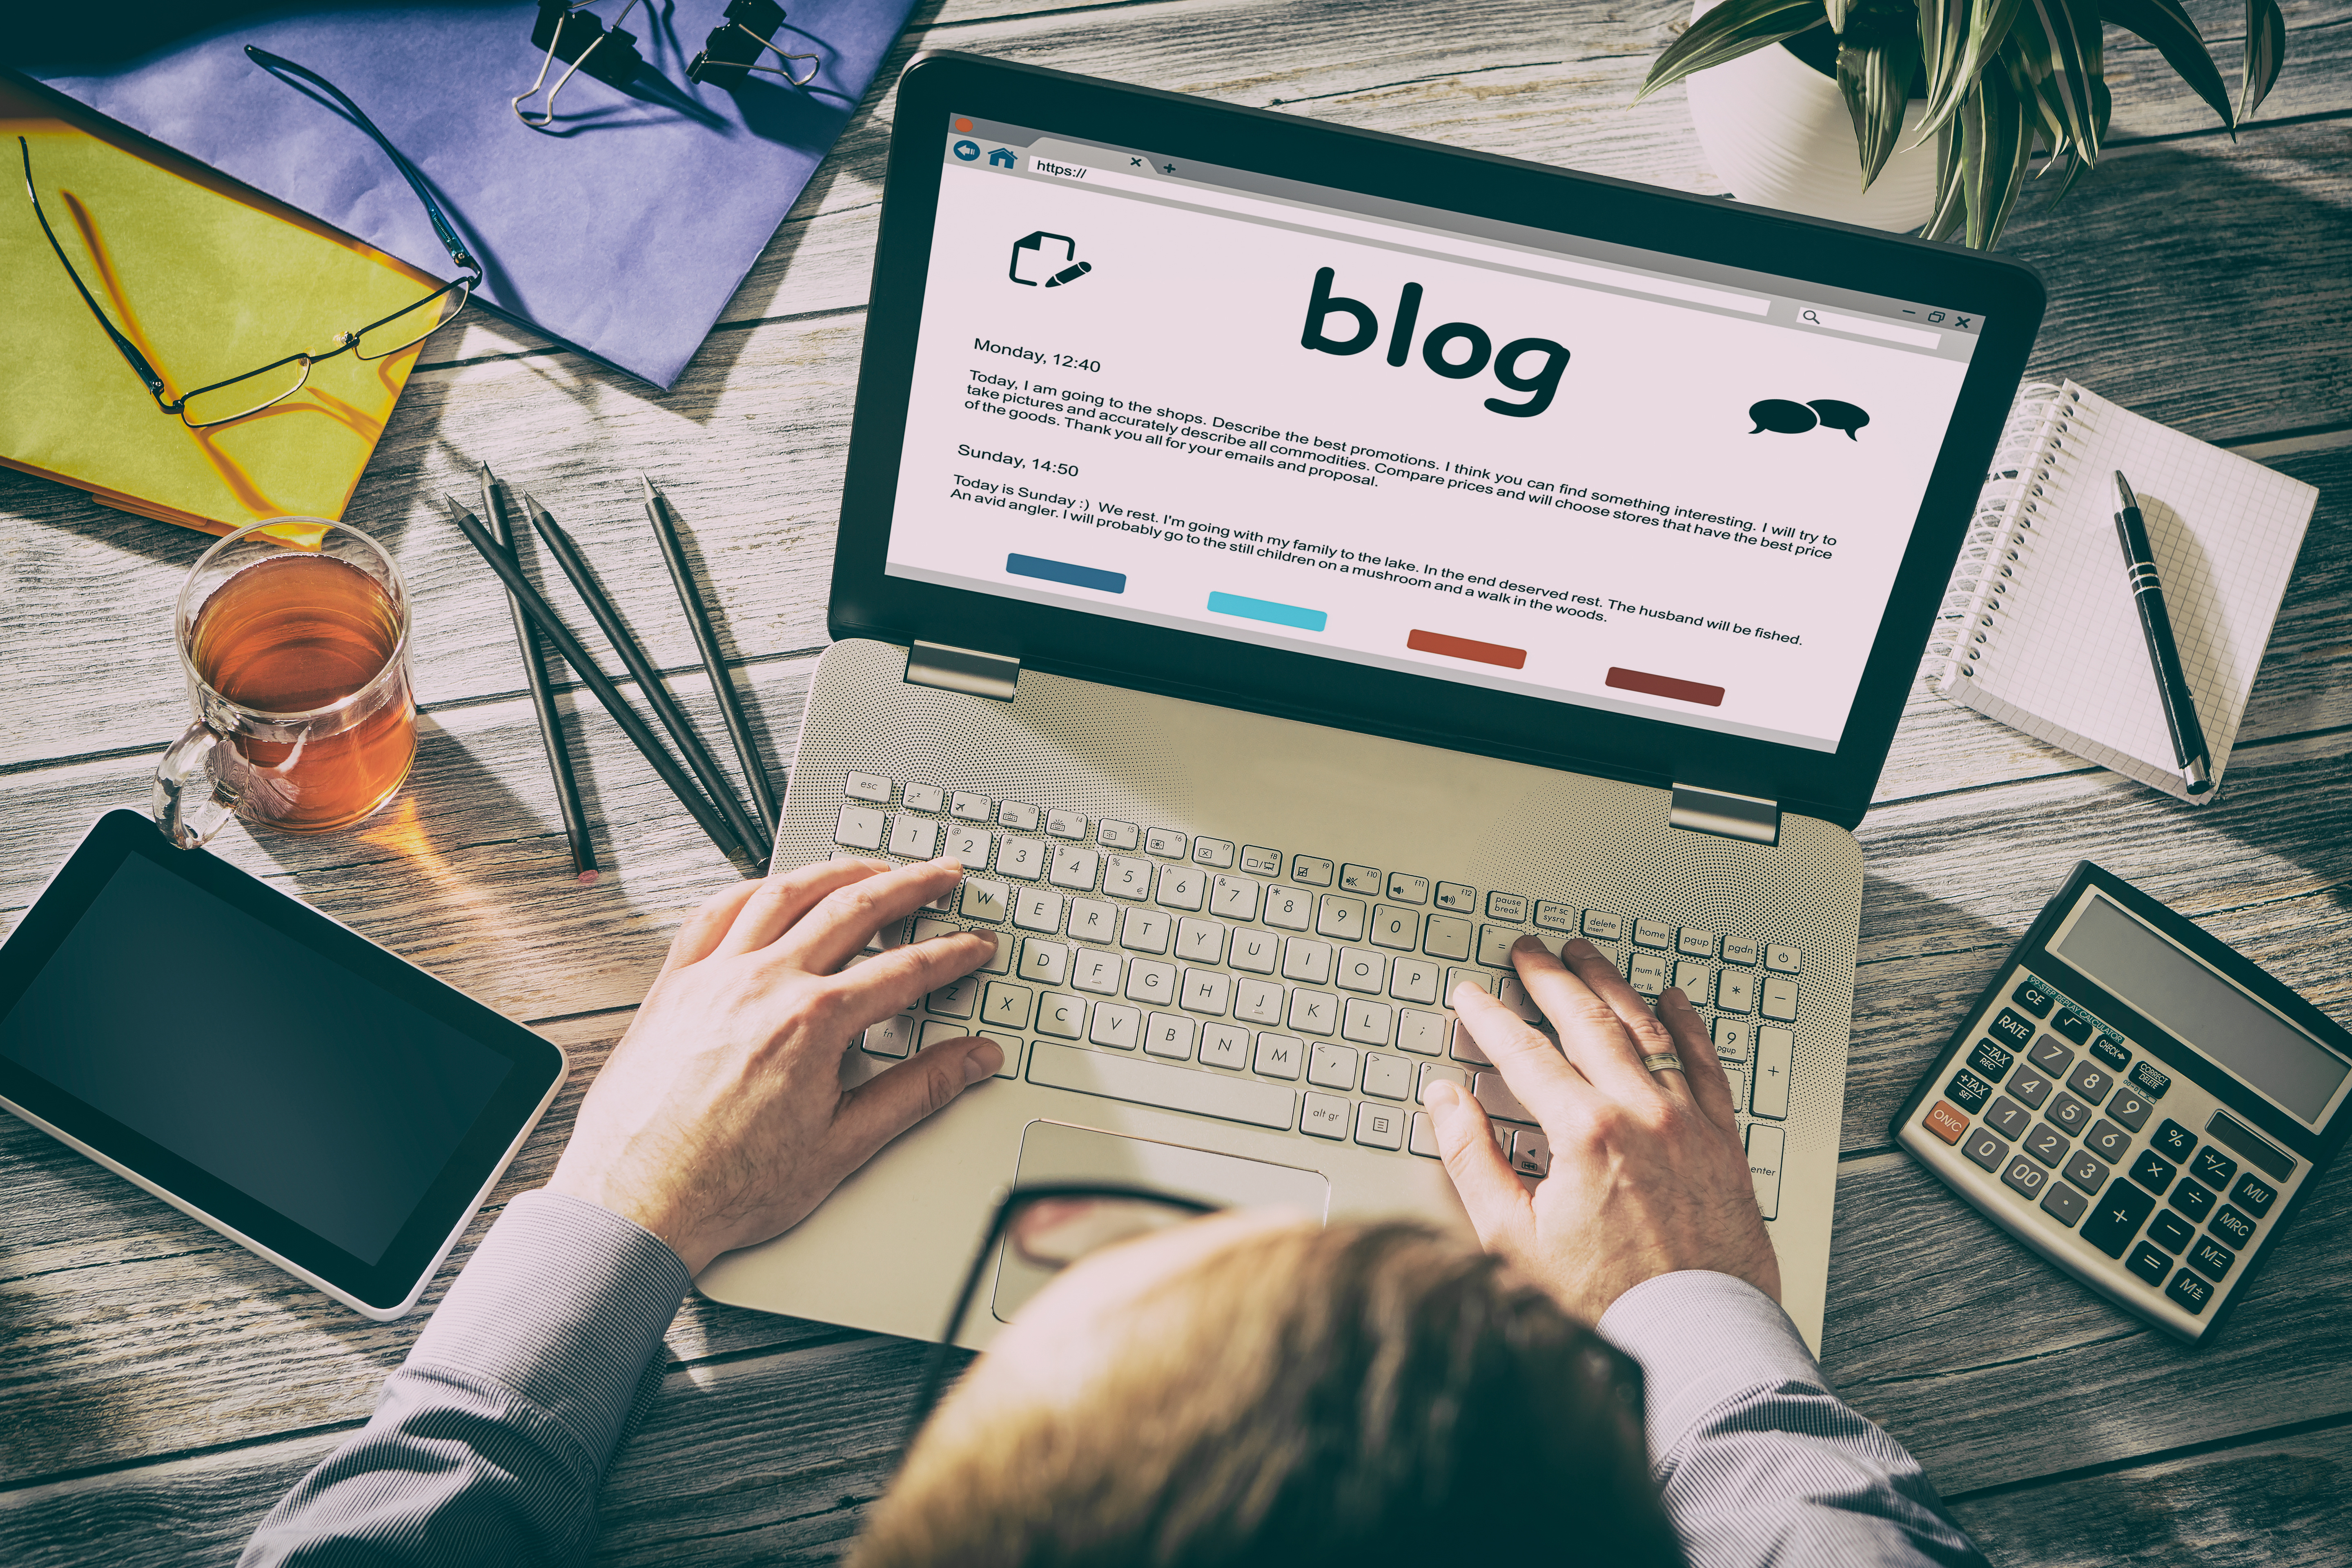 Blogging should be part of an overall marketing campaign